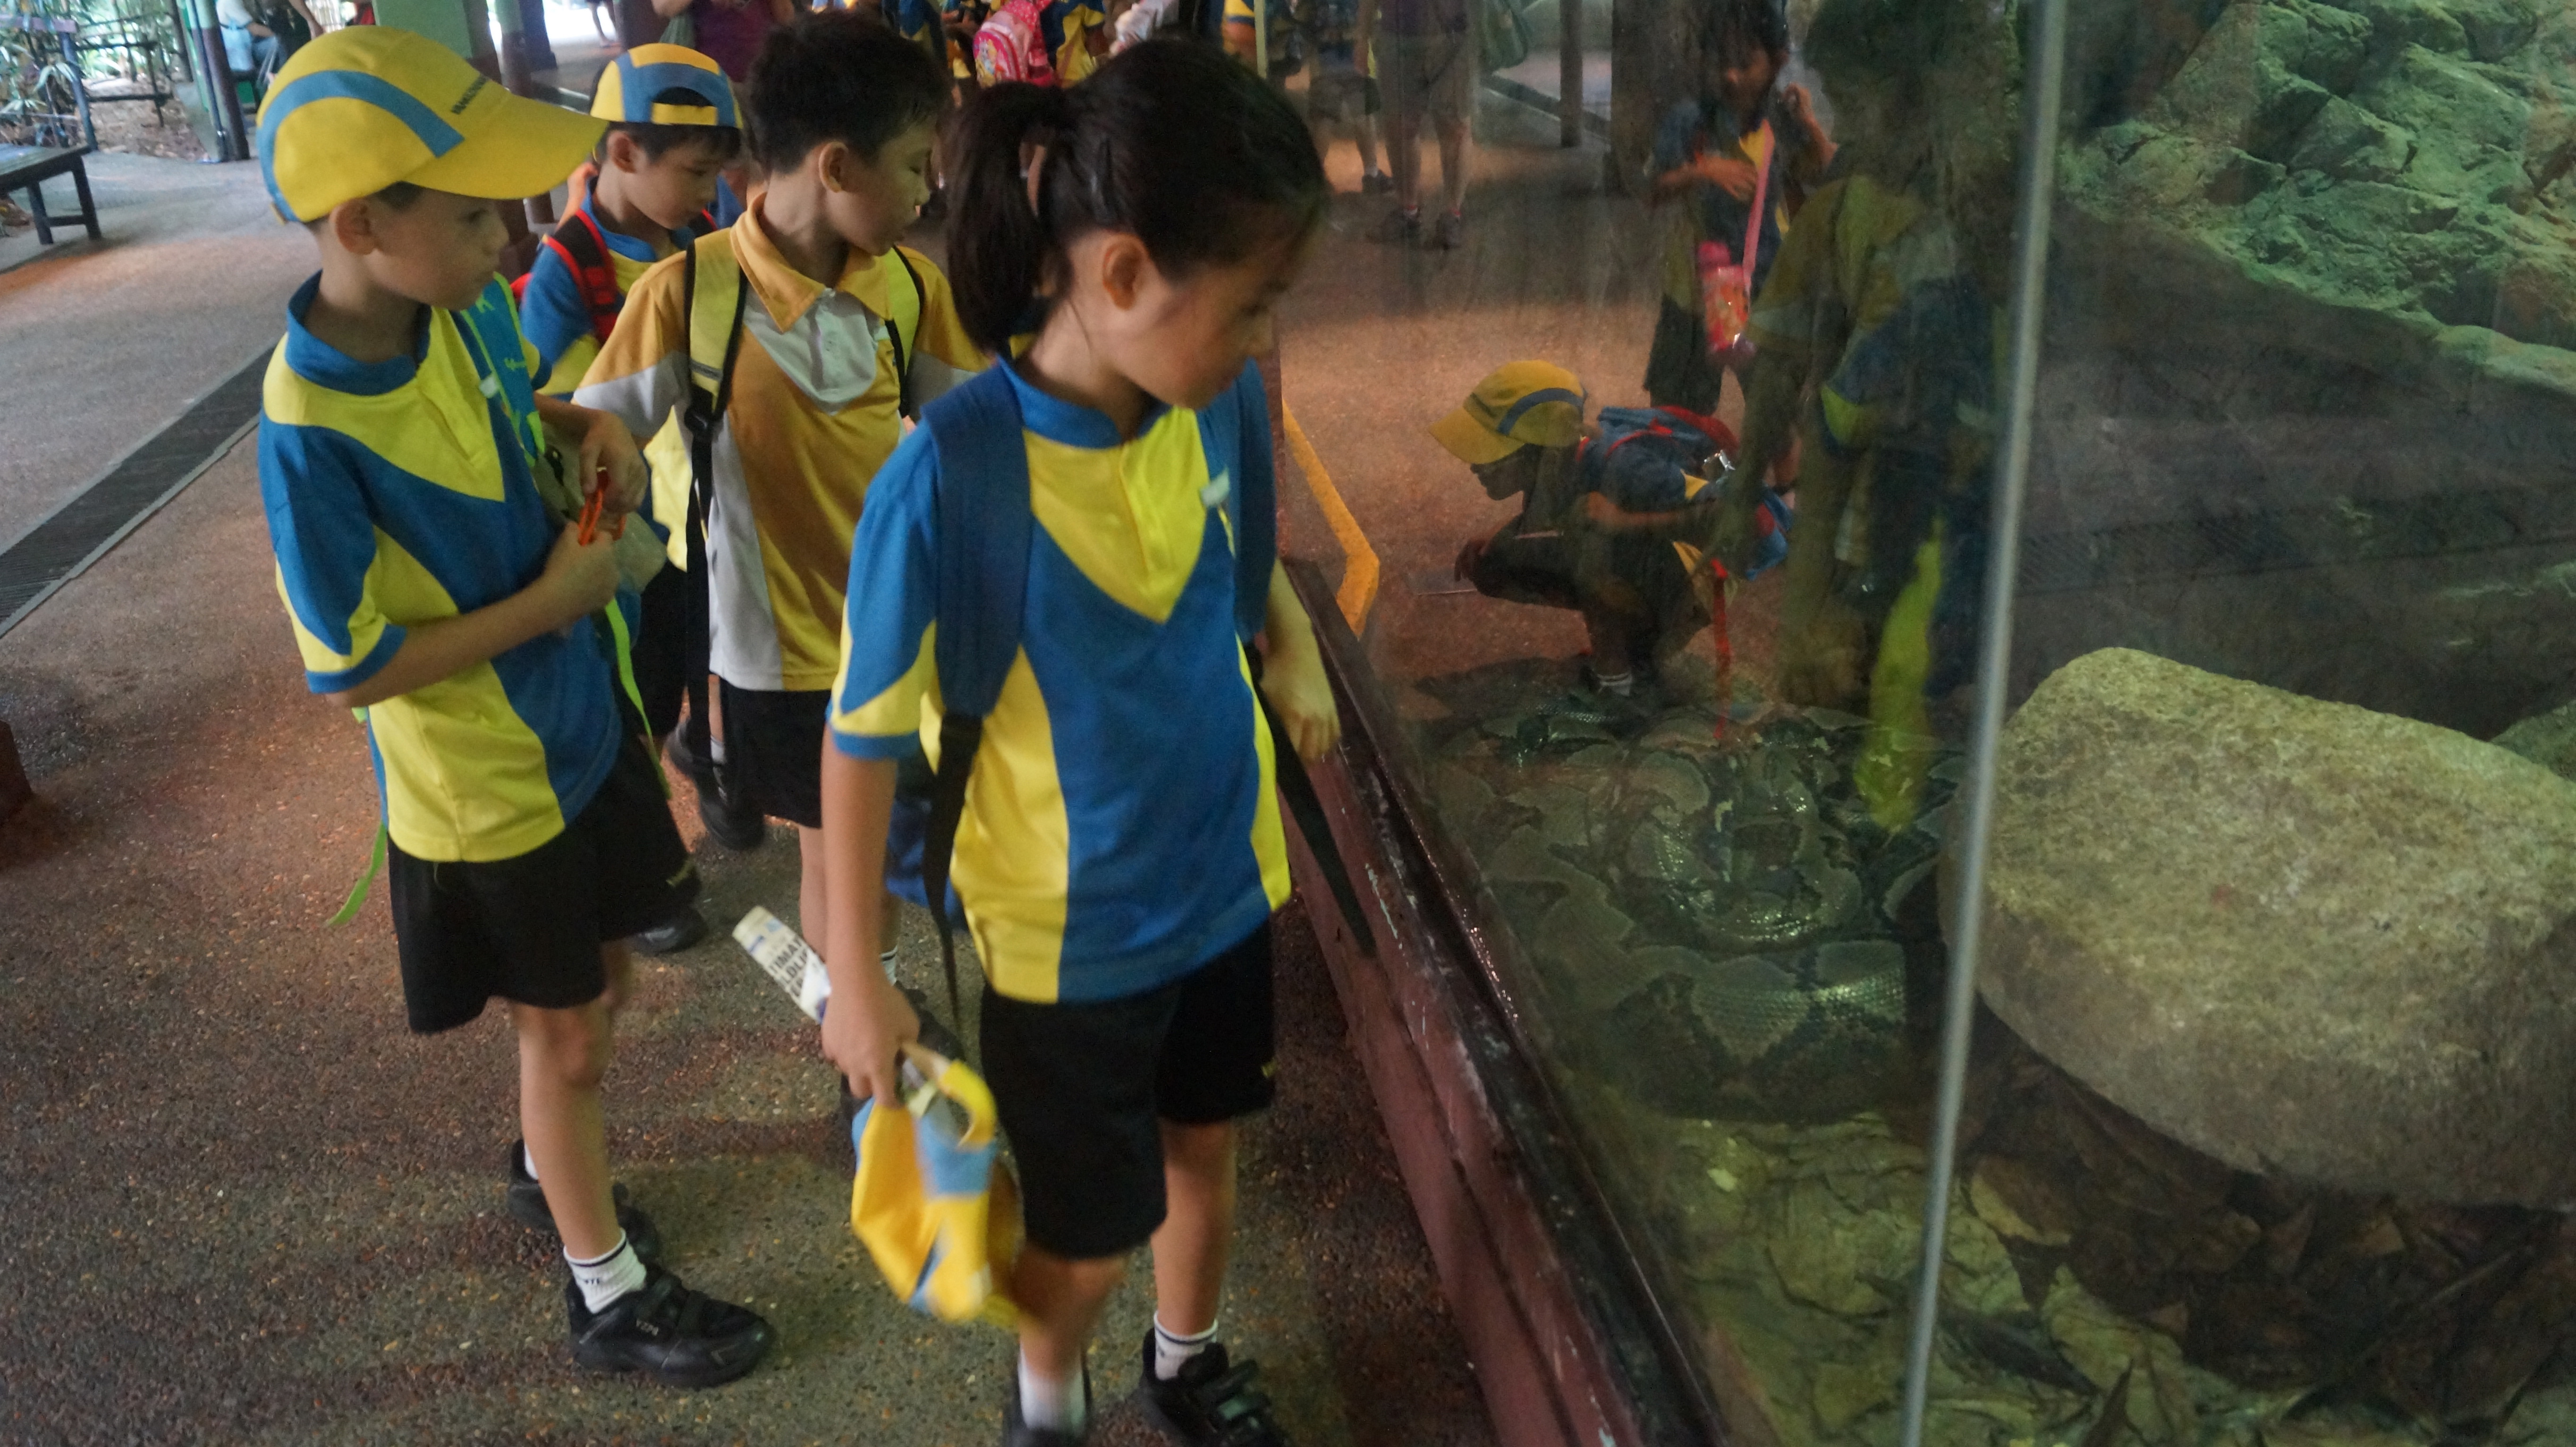 At the snake enclosure.jpg